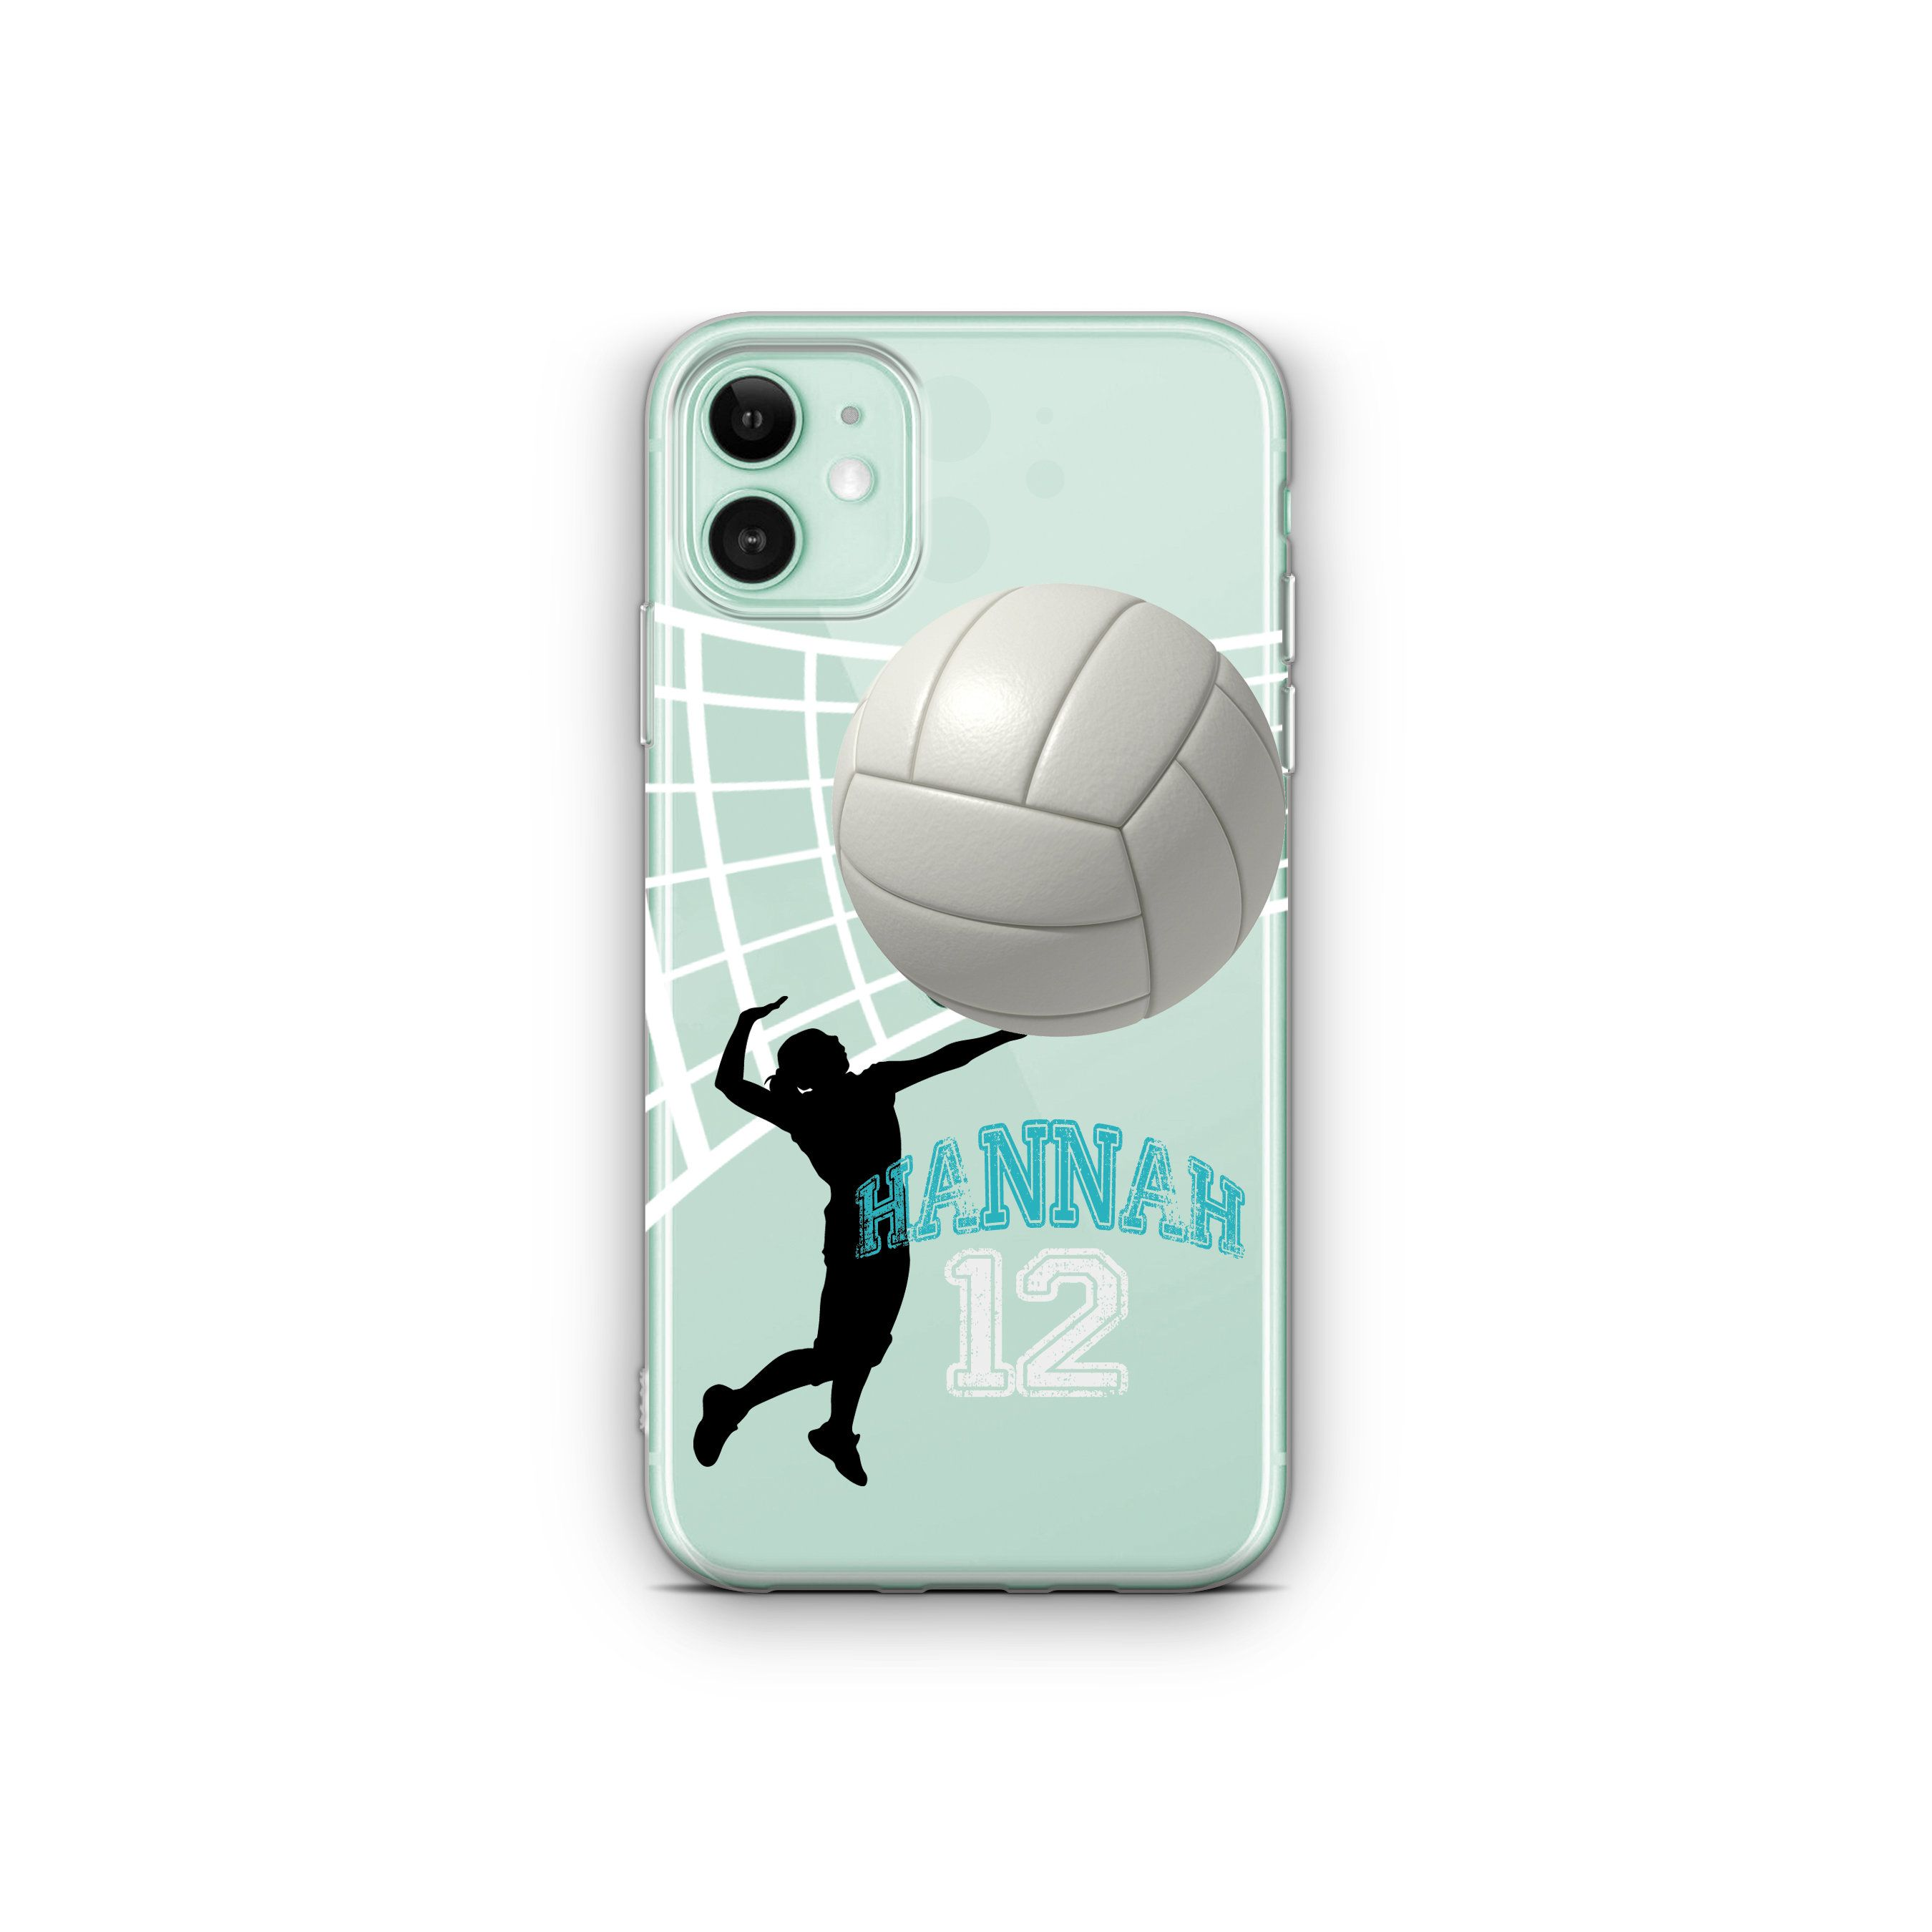 Clear Custom Volleyball Case Personalized Volleyball Case Iphone 11 Case Iphone X Case Iphone Xs Max Xs Iphone Xr Case Iphone 8 Plus Samsung In 2020 Volleyball Phone Cases Volleyball Iphone Case Iphone Cases